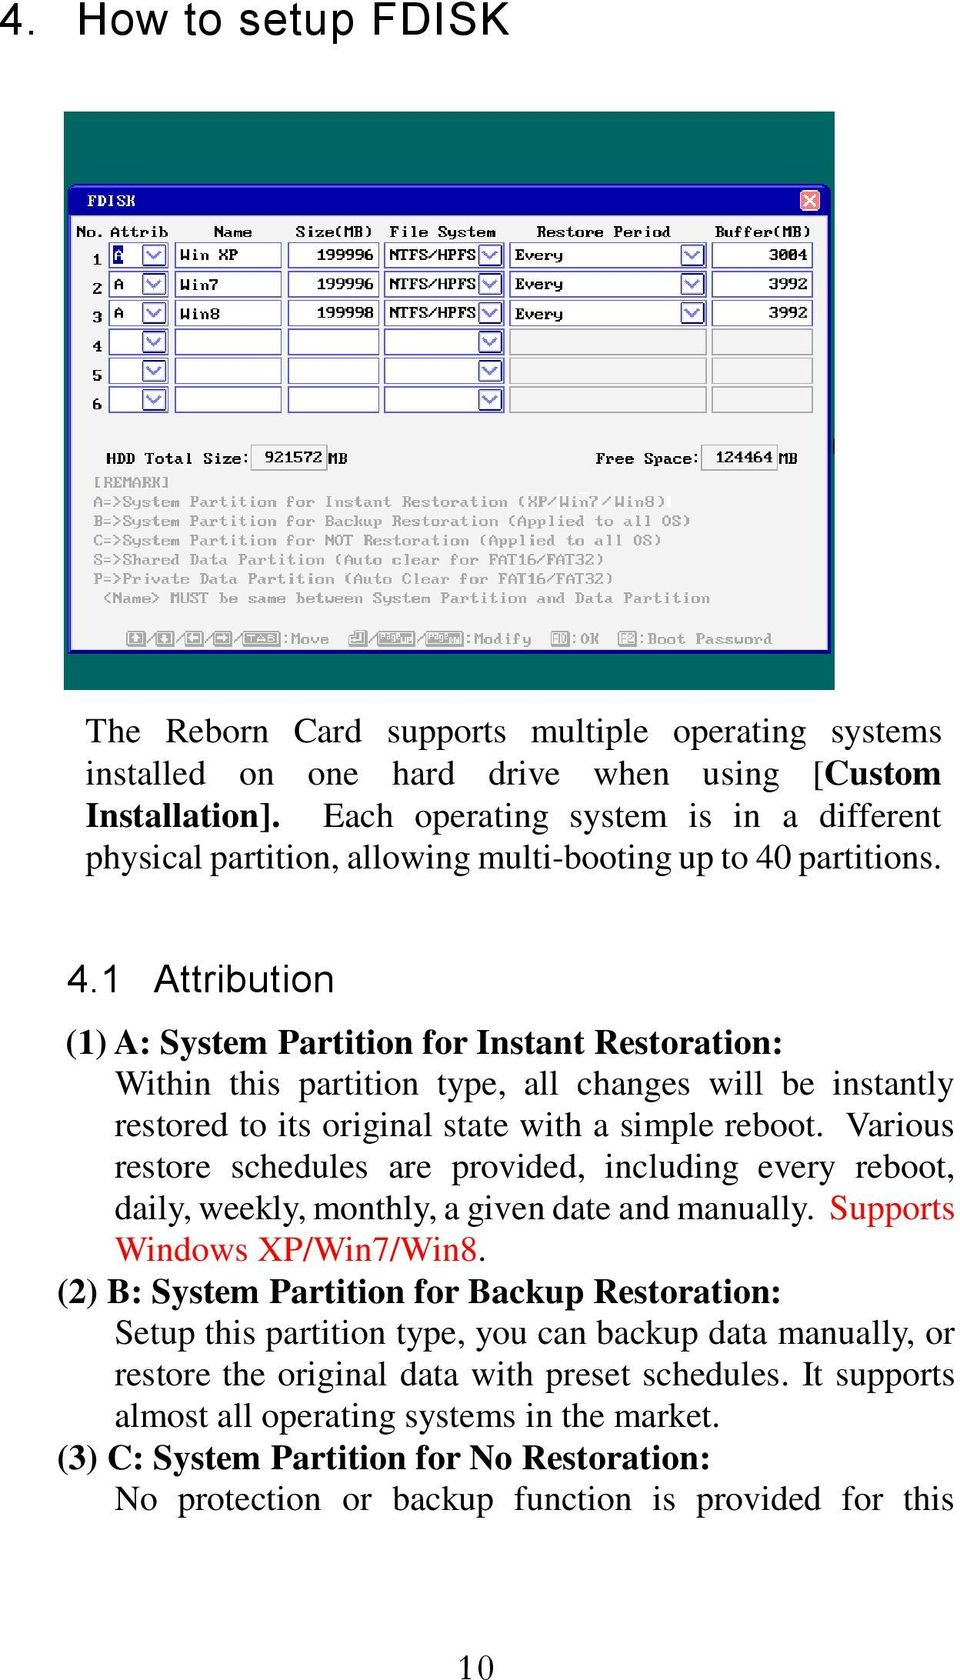 partitions. 4.1 Attribution (1) A: System Partition for Instant Restoration: Within this partition type, all changes will be instantly restored to its original state with a simple reboot.